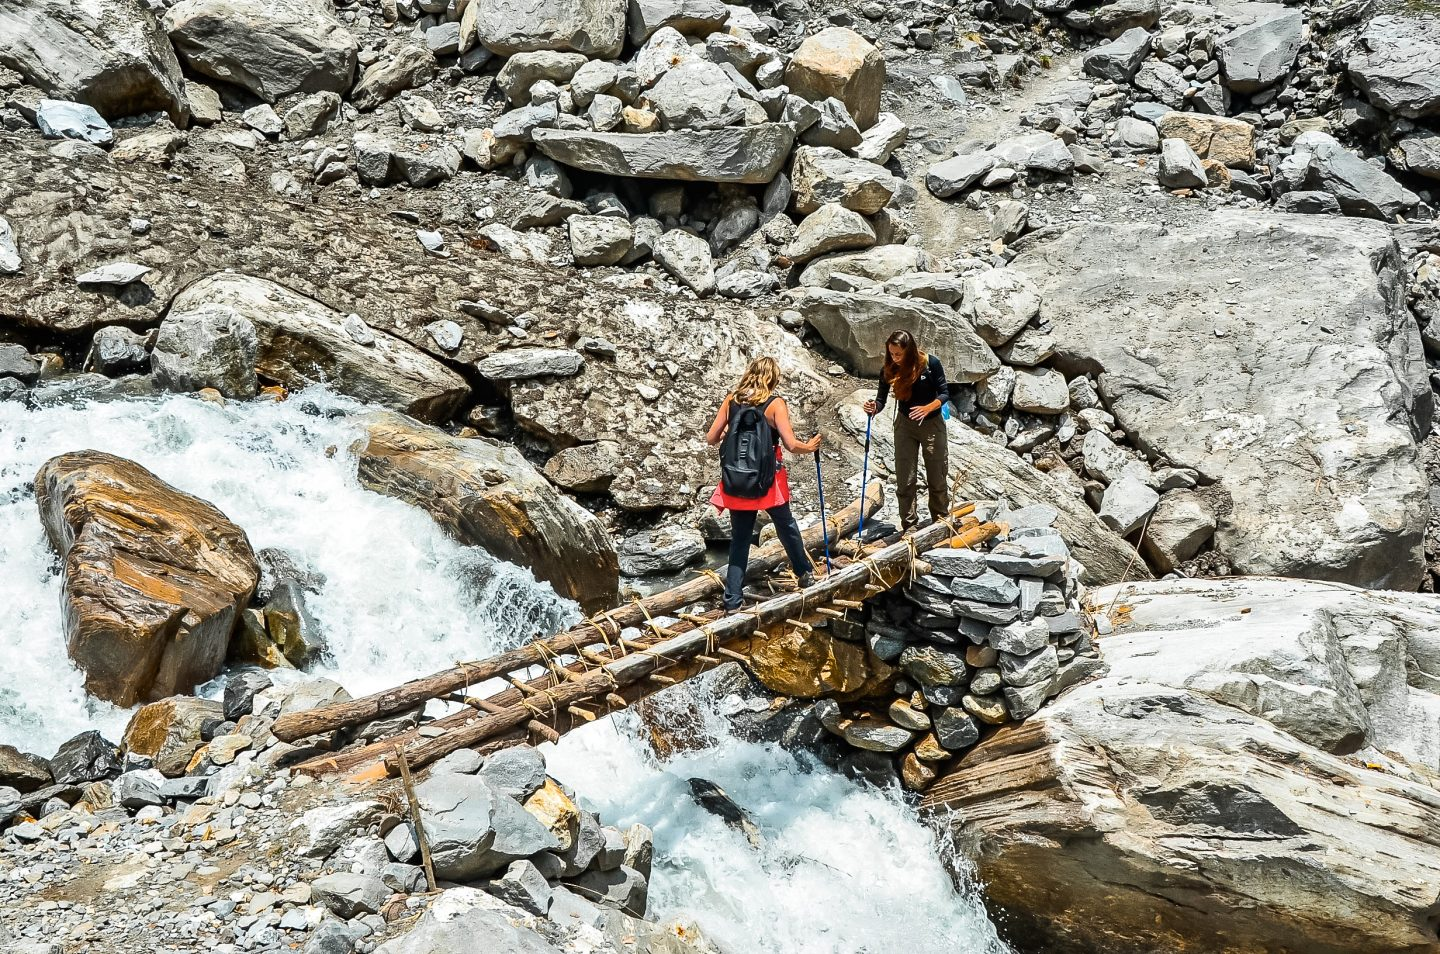 Mother and daughter cross over a river on the hike to annapurna base camp